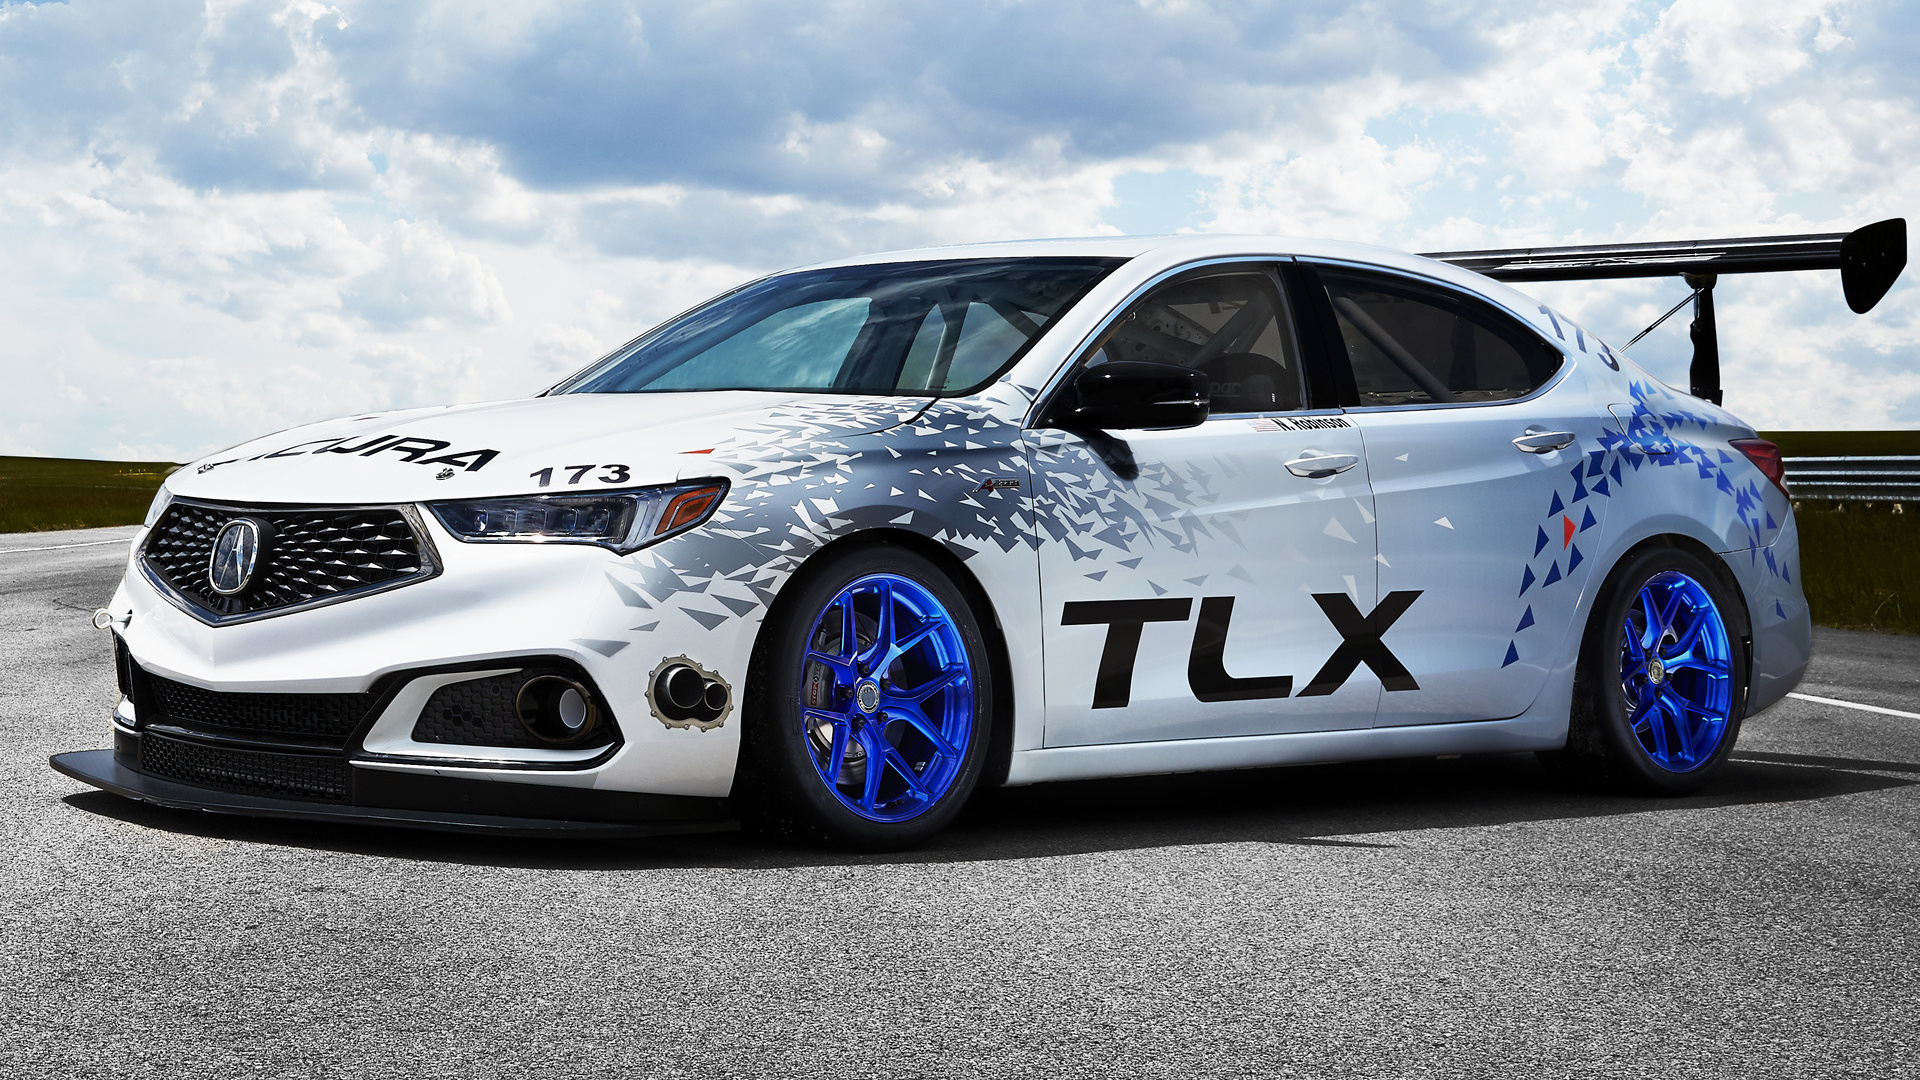 Acura TLX A-Spec Race Car (2017) Wallpapers and HD Images ...